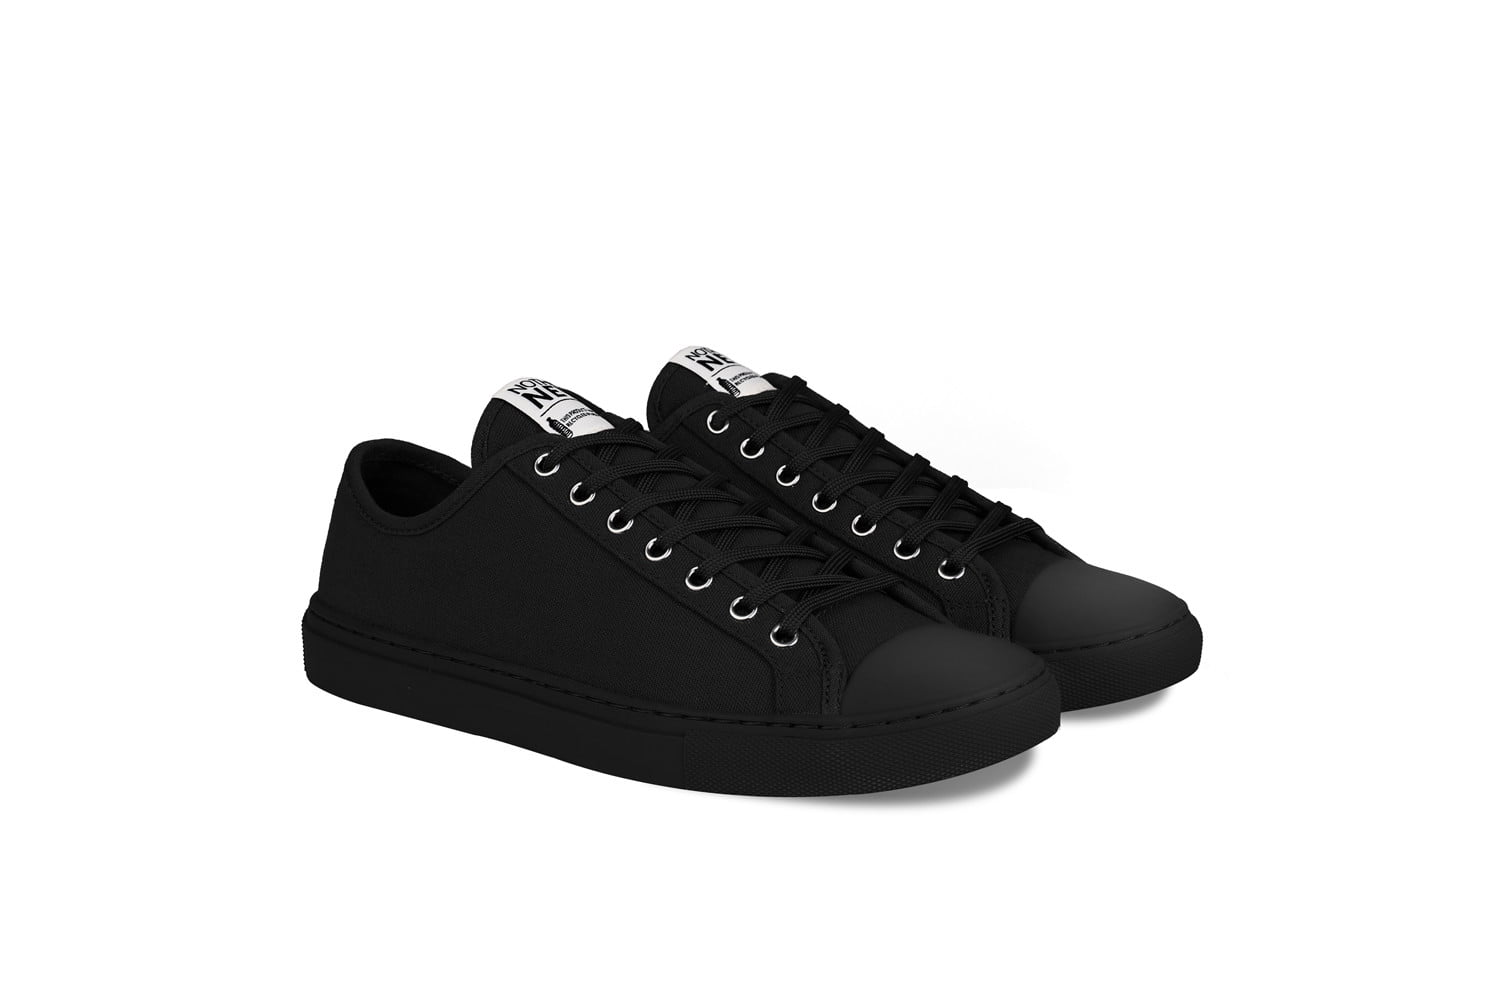 nothing new sustainable sneakers shoes allblack low top